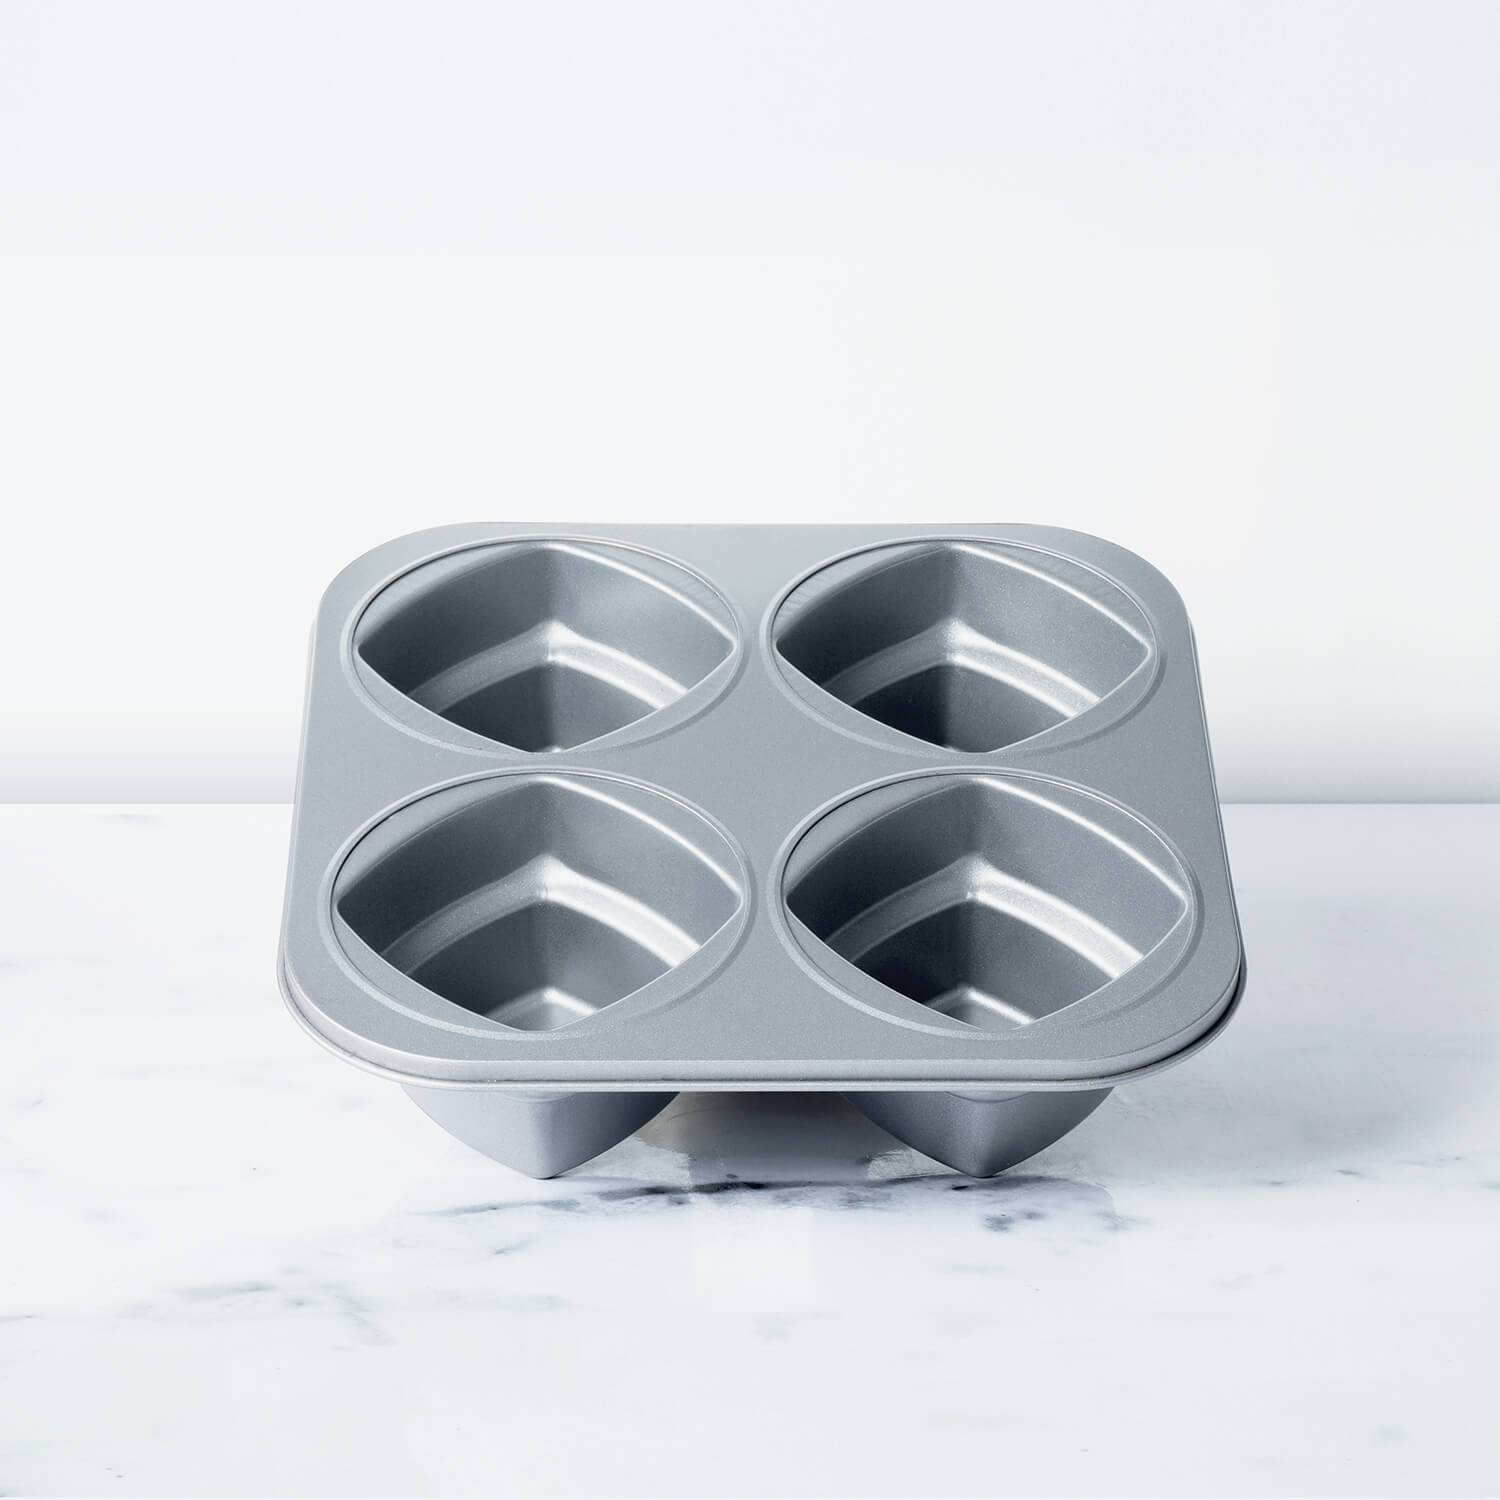 Meyer Bakemaster - 4 Cup 2-Tier Square Cake Pan - Pots and Pans